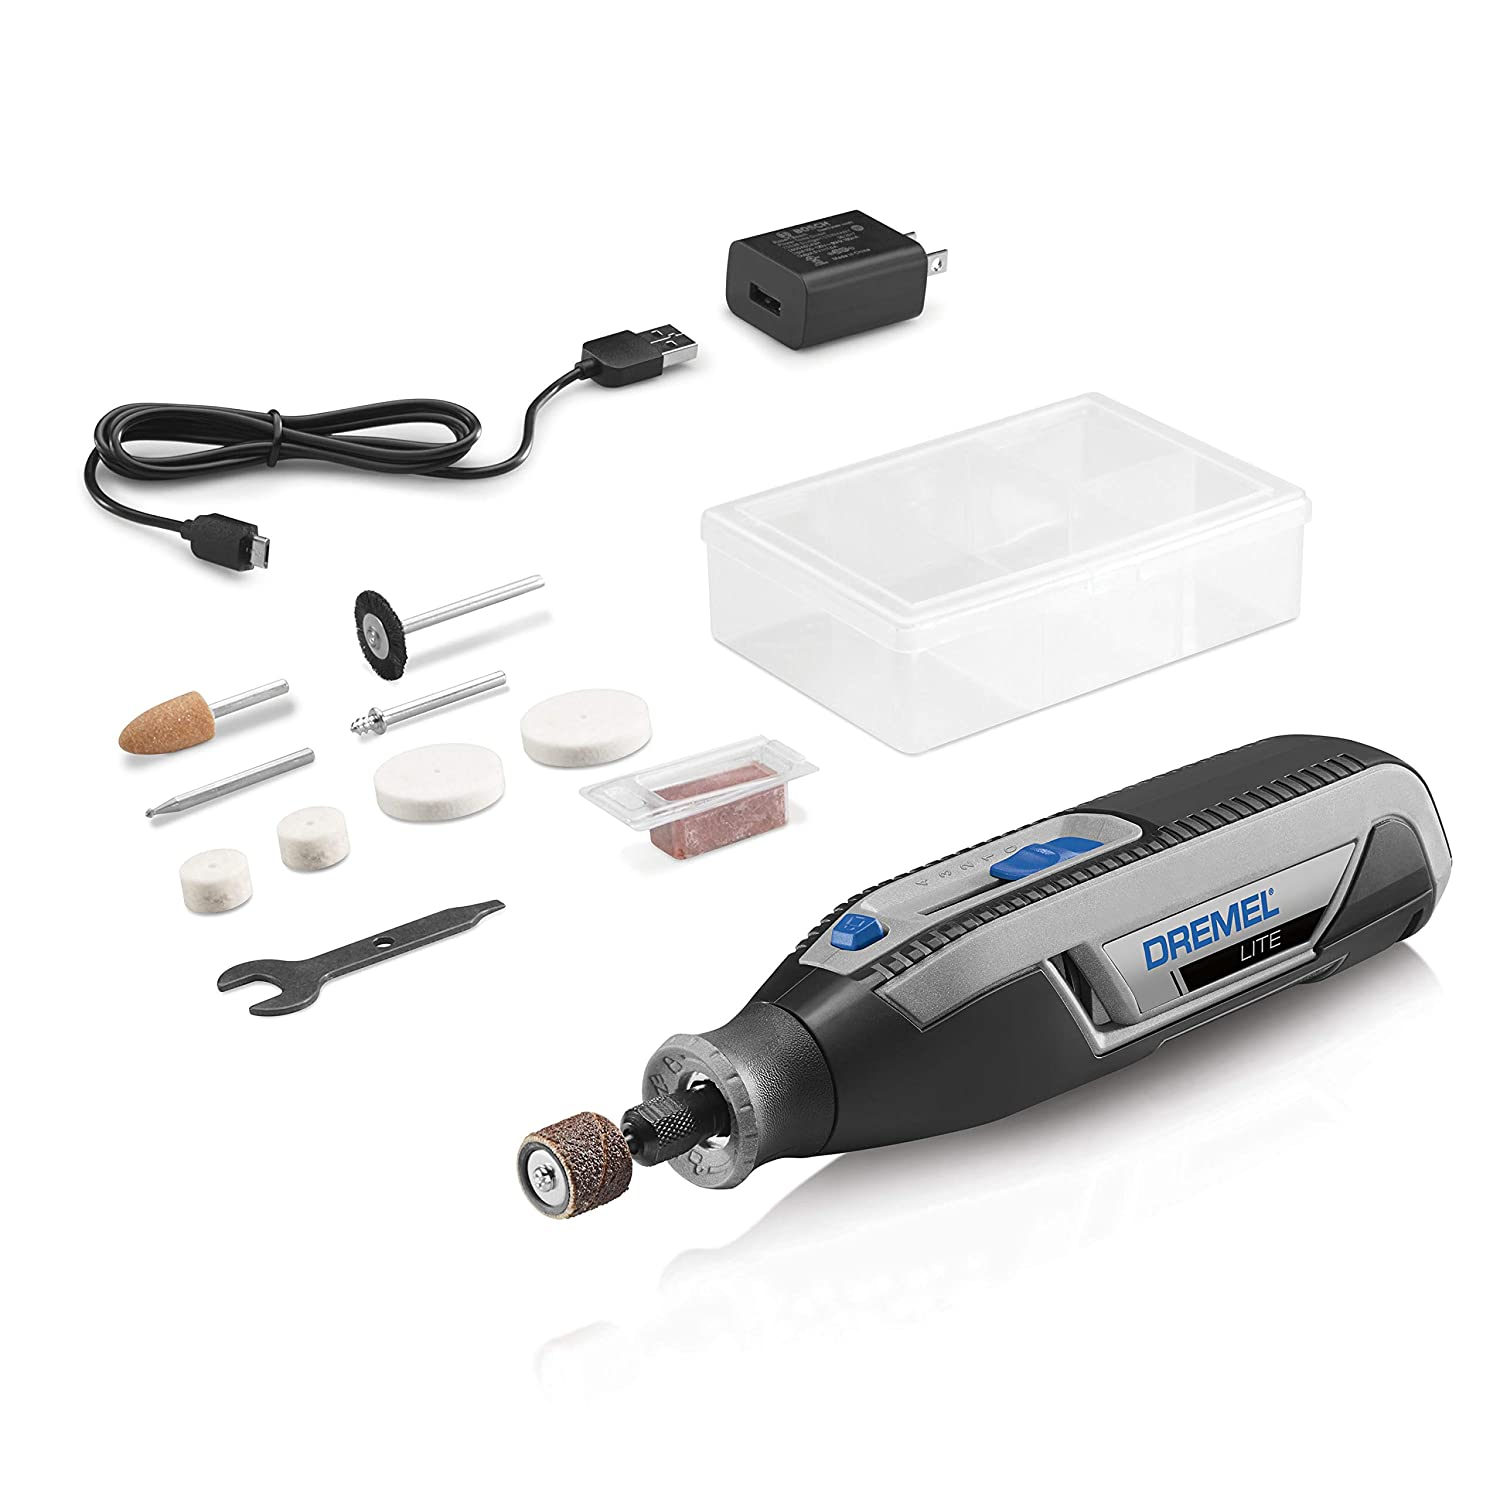 Dremel Lite 7760 N/10 4V Li-Ion Cordless Rotary Tool Variable Speed Multi-Purpose Rotary Tool Kit, USB Charging, Easy Accessory Changes - Perfect For Light-Duty DIY & Crafting